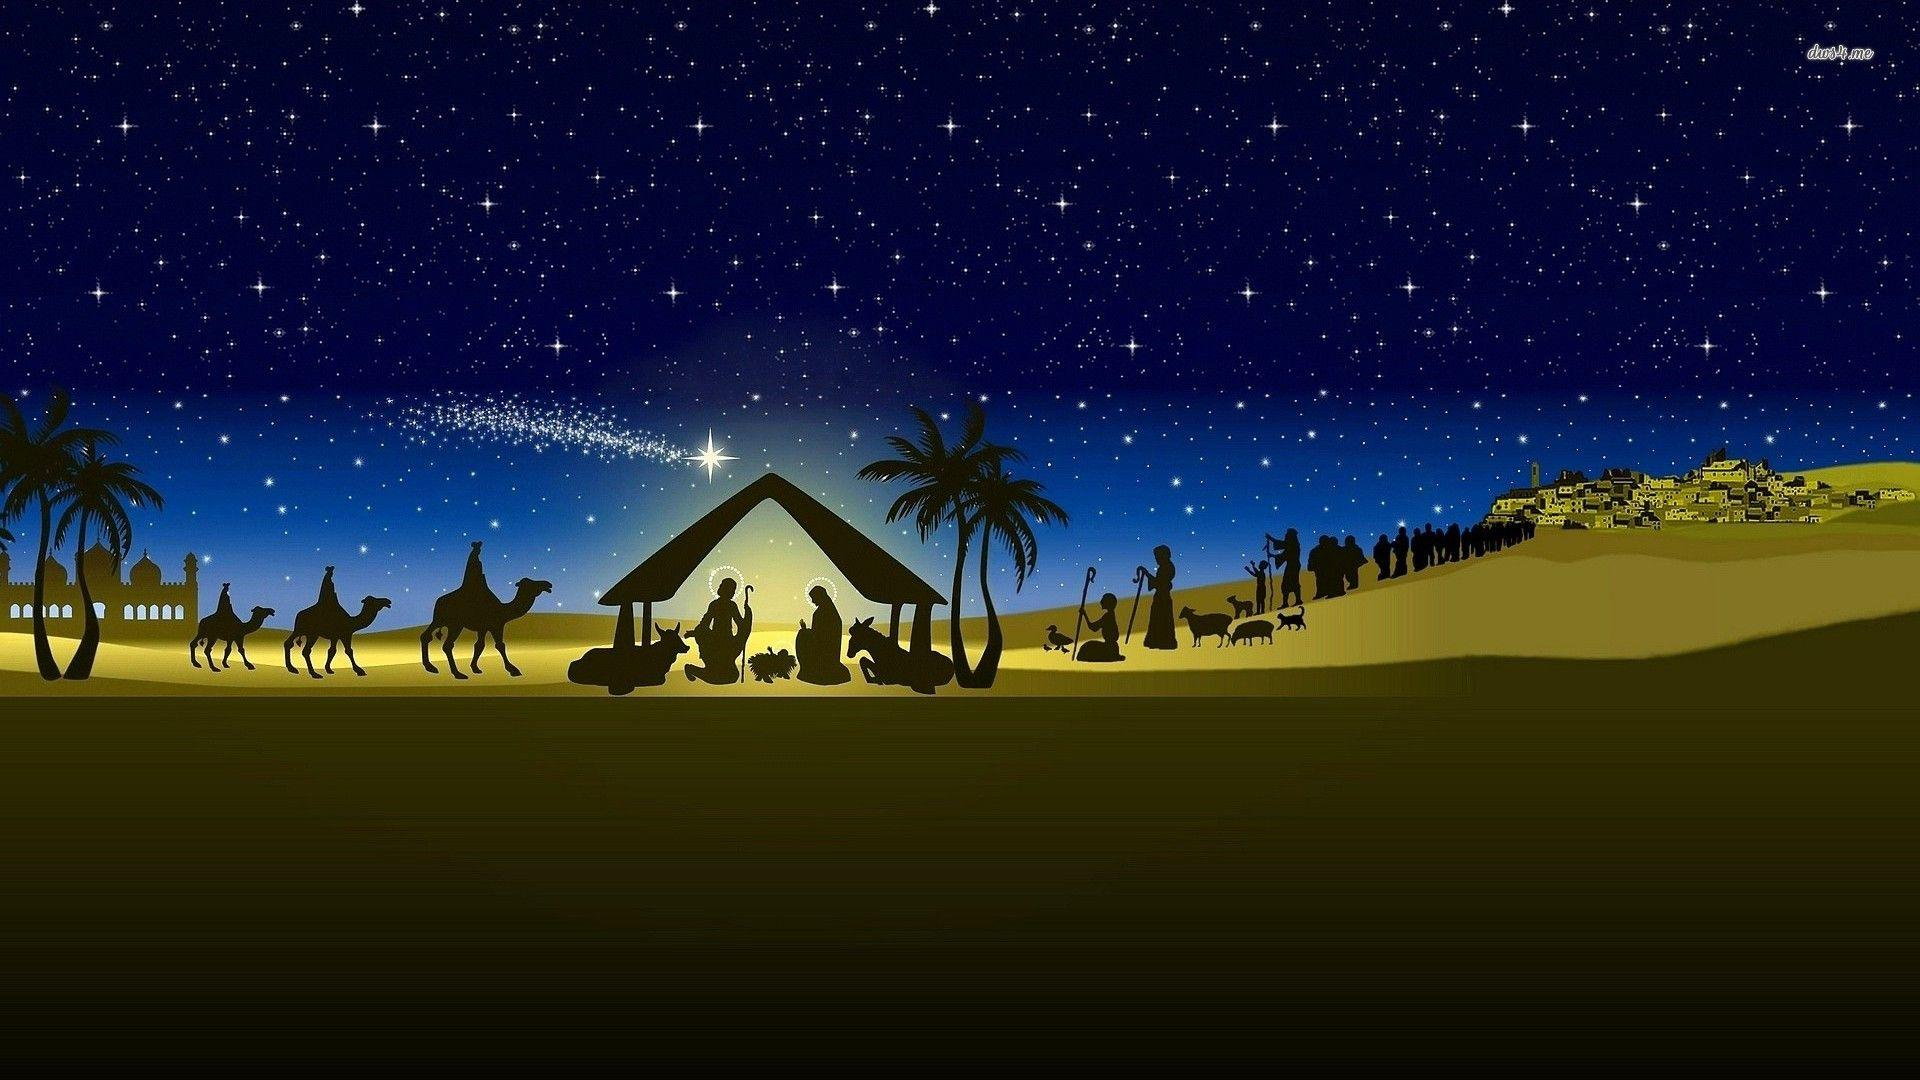 Nativity Scene Backgrounds 1920x1080